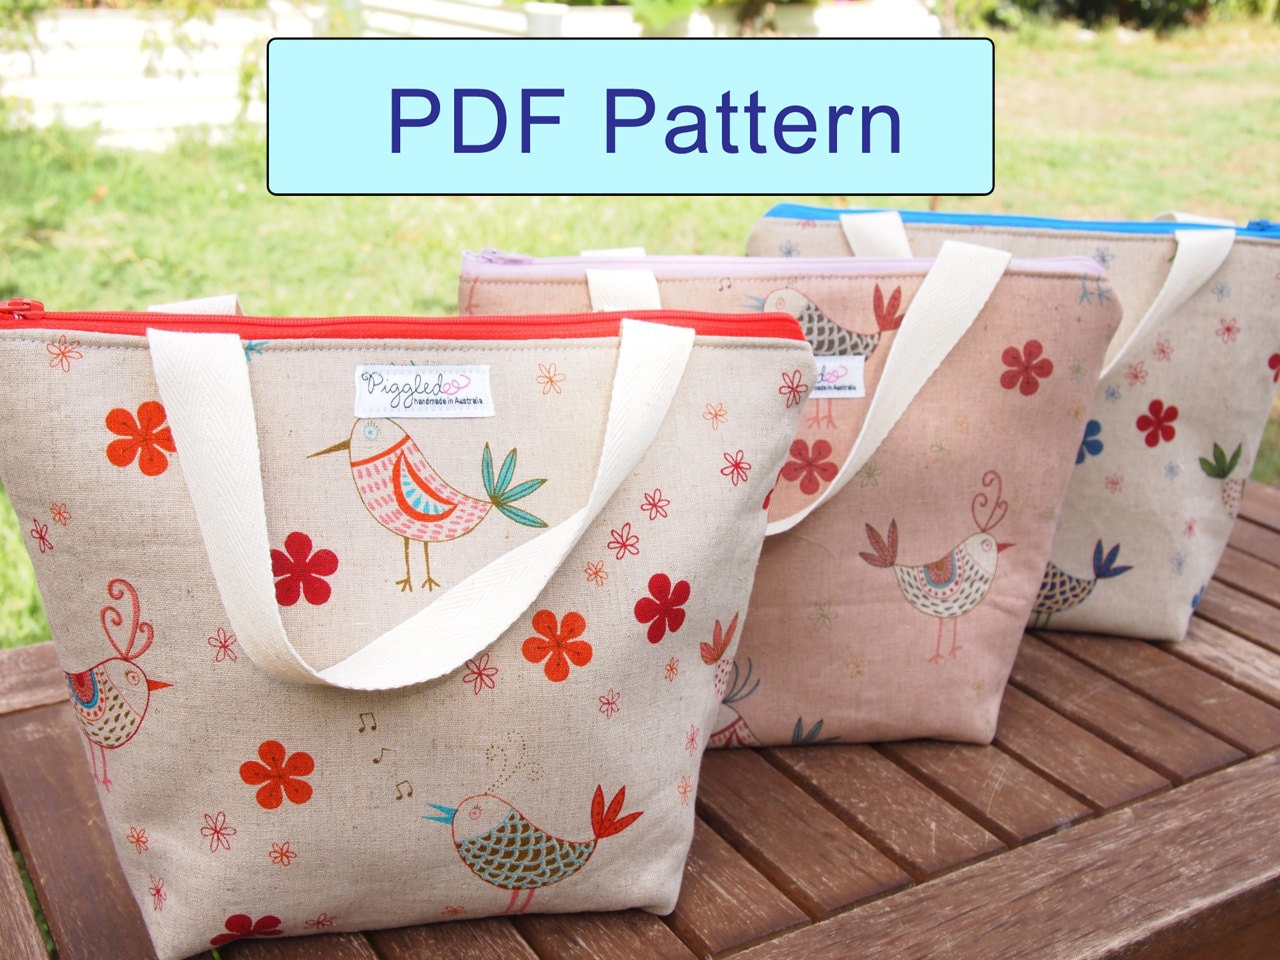 Insulated lunch bag diy pdf pattern with detailed